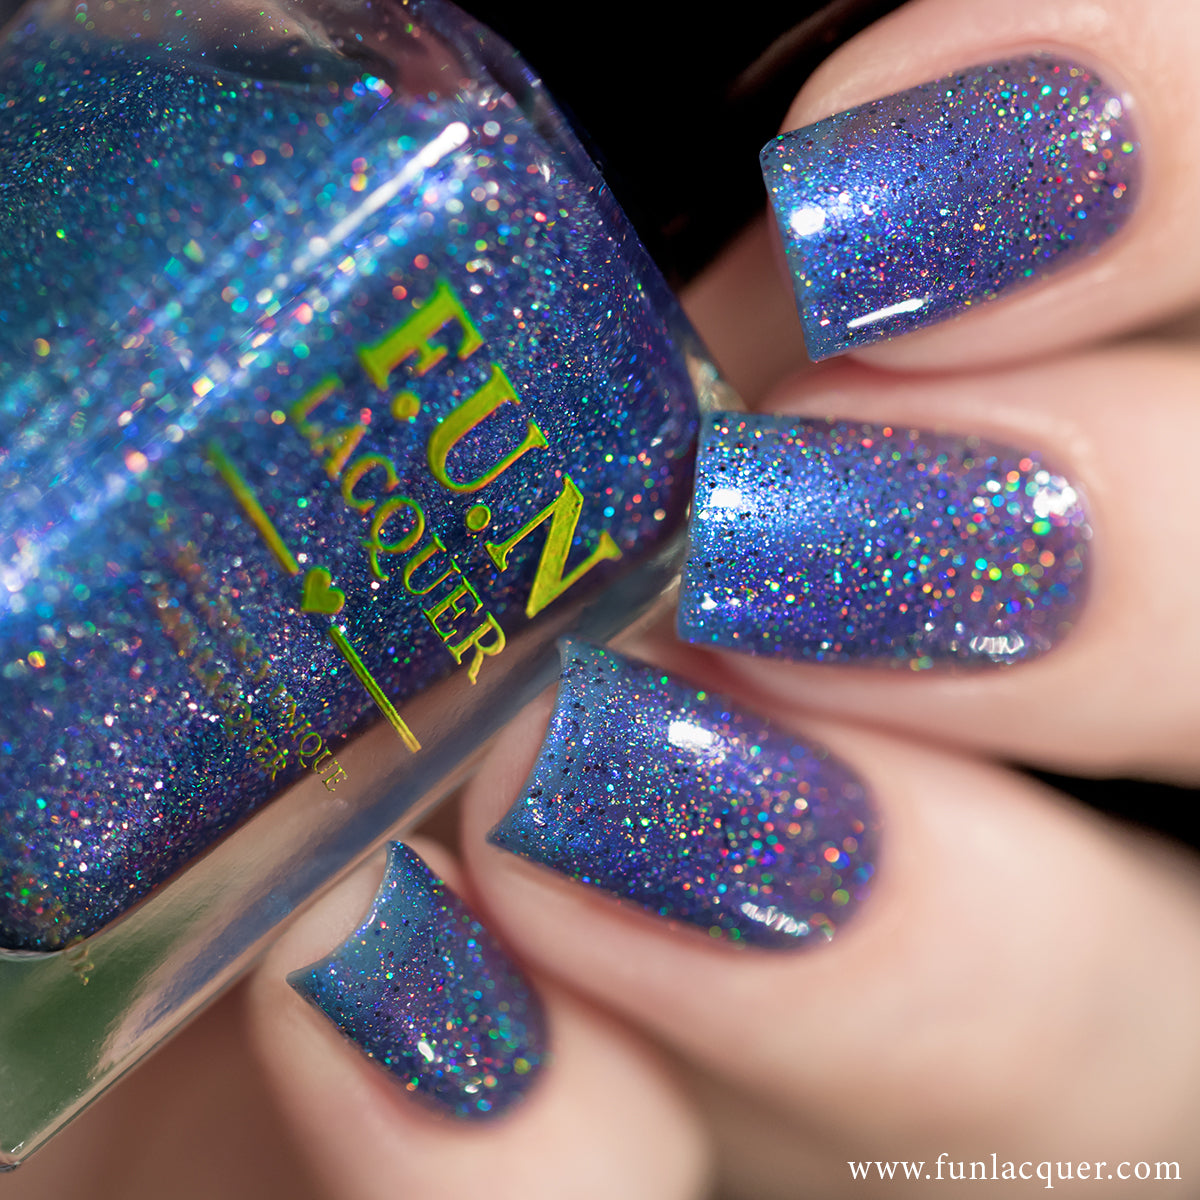 *PRE-SALE* F.U.N Lacquer - Butterfly (H)